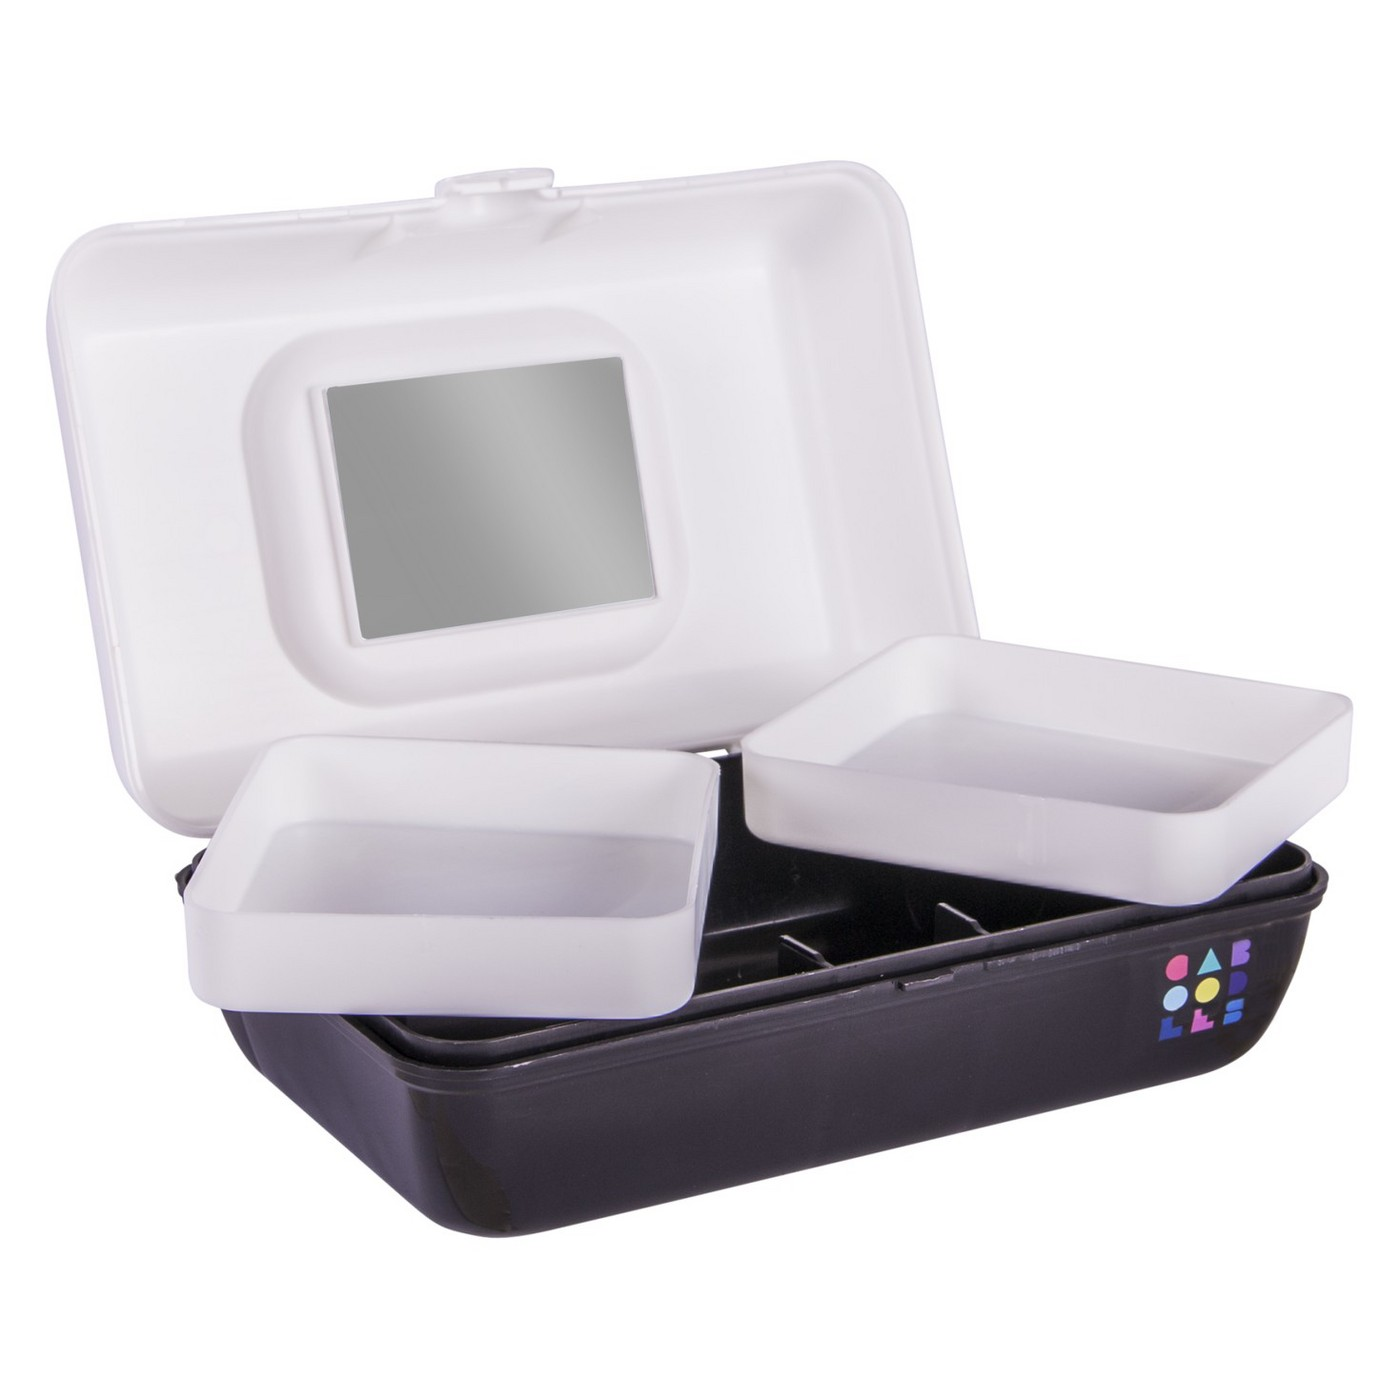 Caboodles Makeup Bags And Organizers Retro Pretty in Petite - White/Black - image 1 of 3